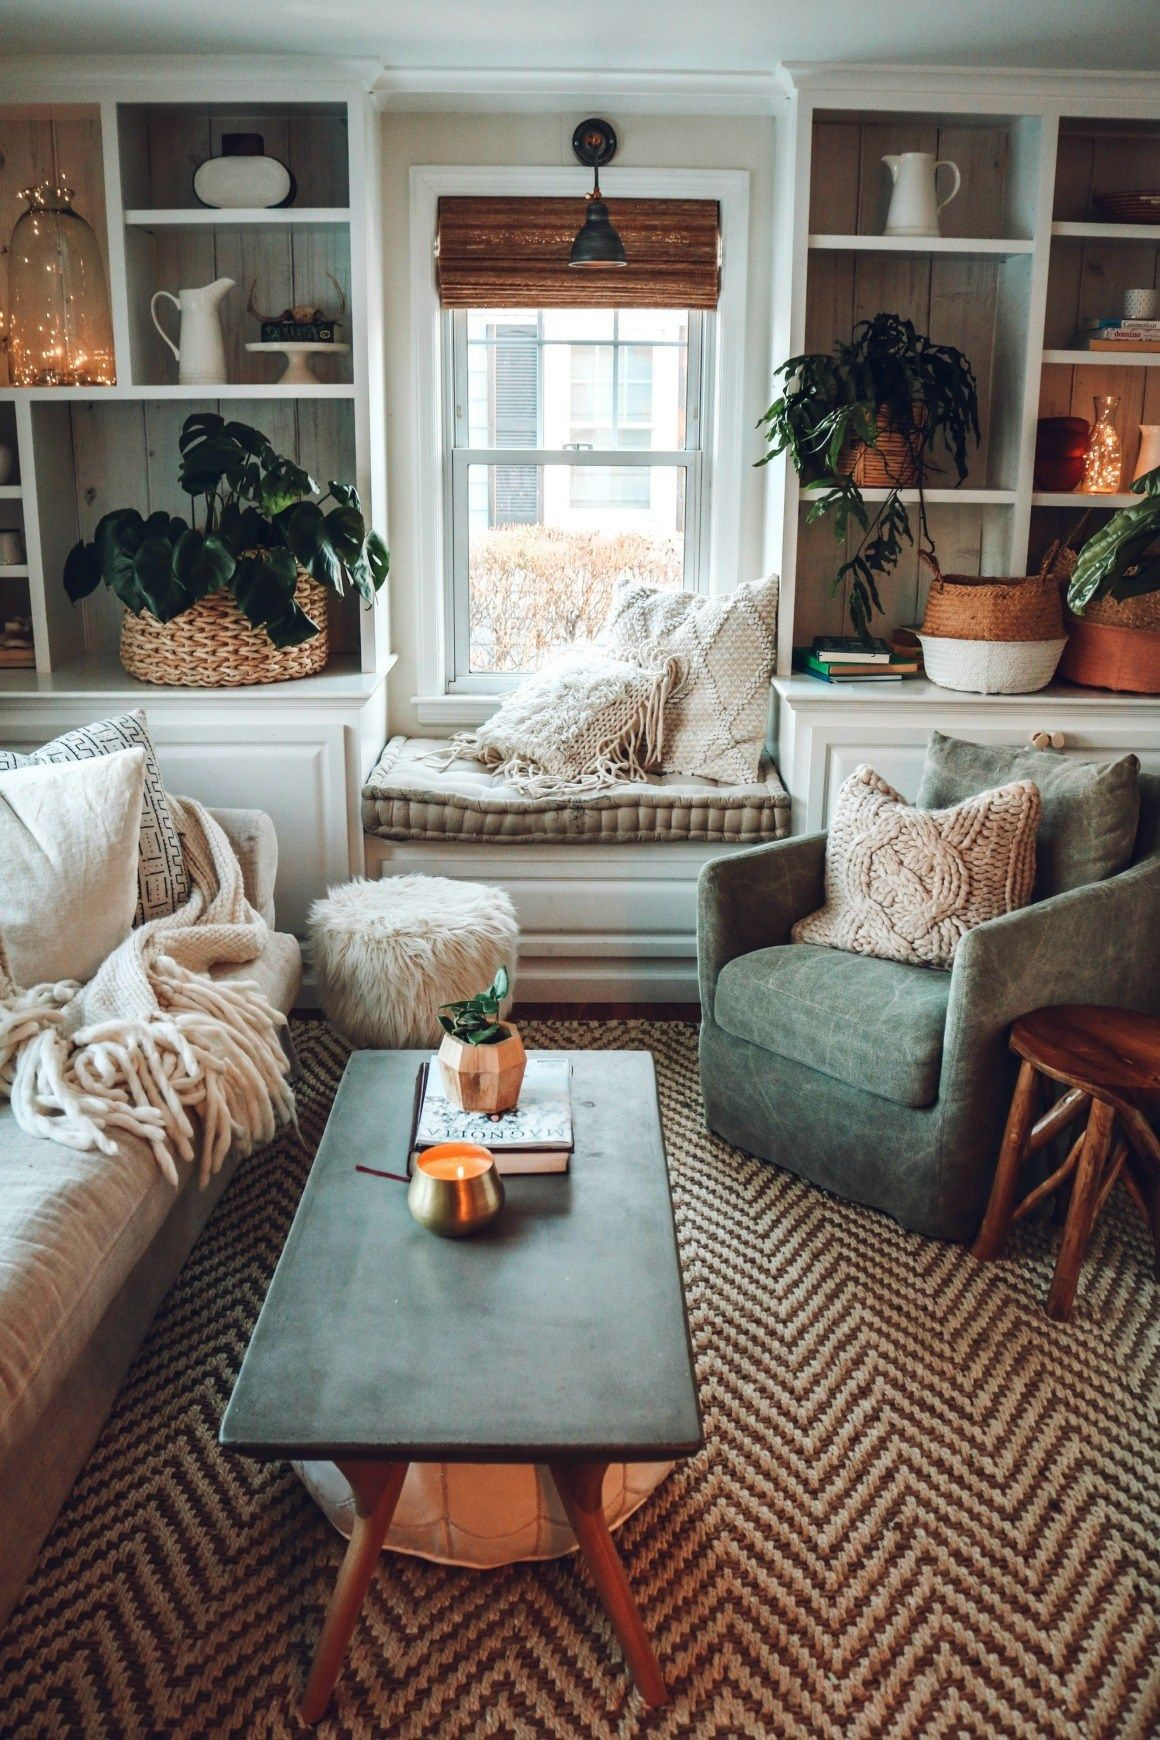 10 Ways your Home *could* Look Cheap - Nesting With Grace